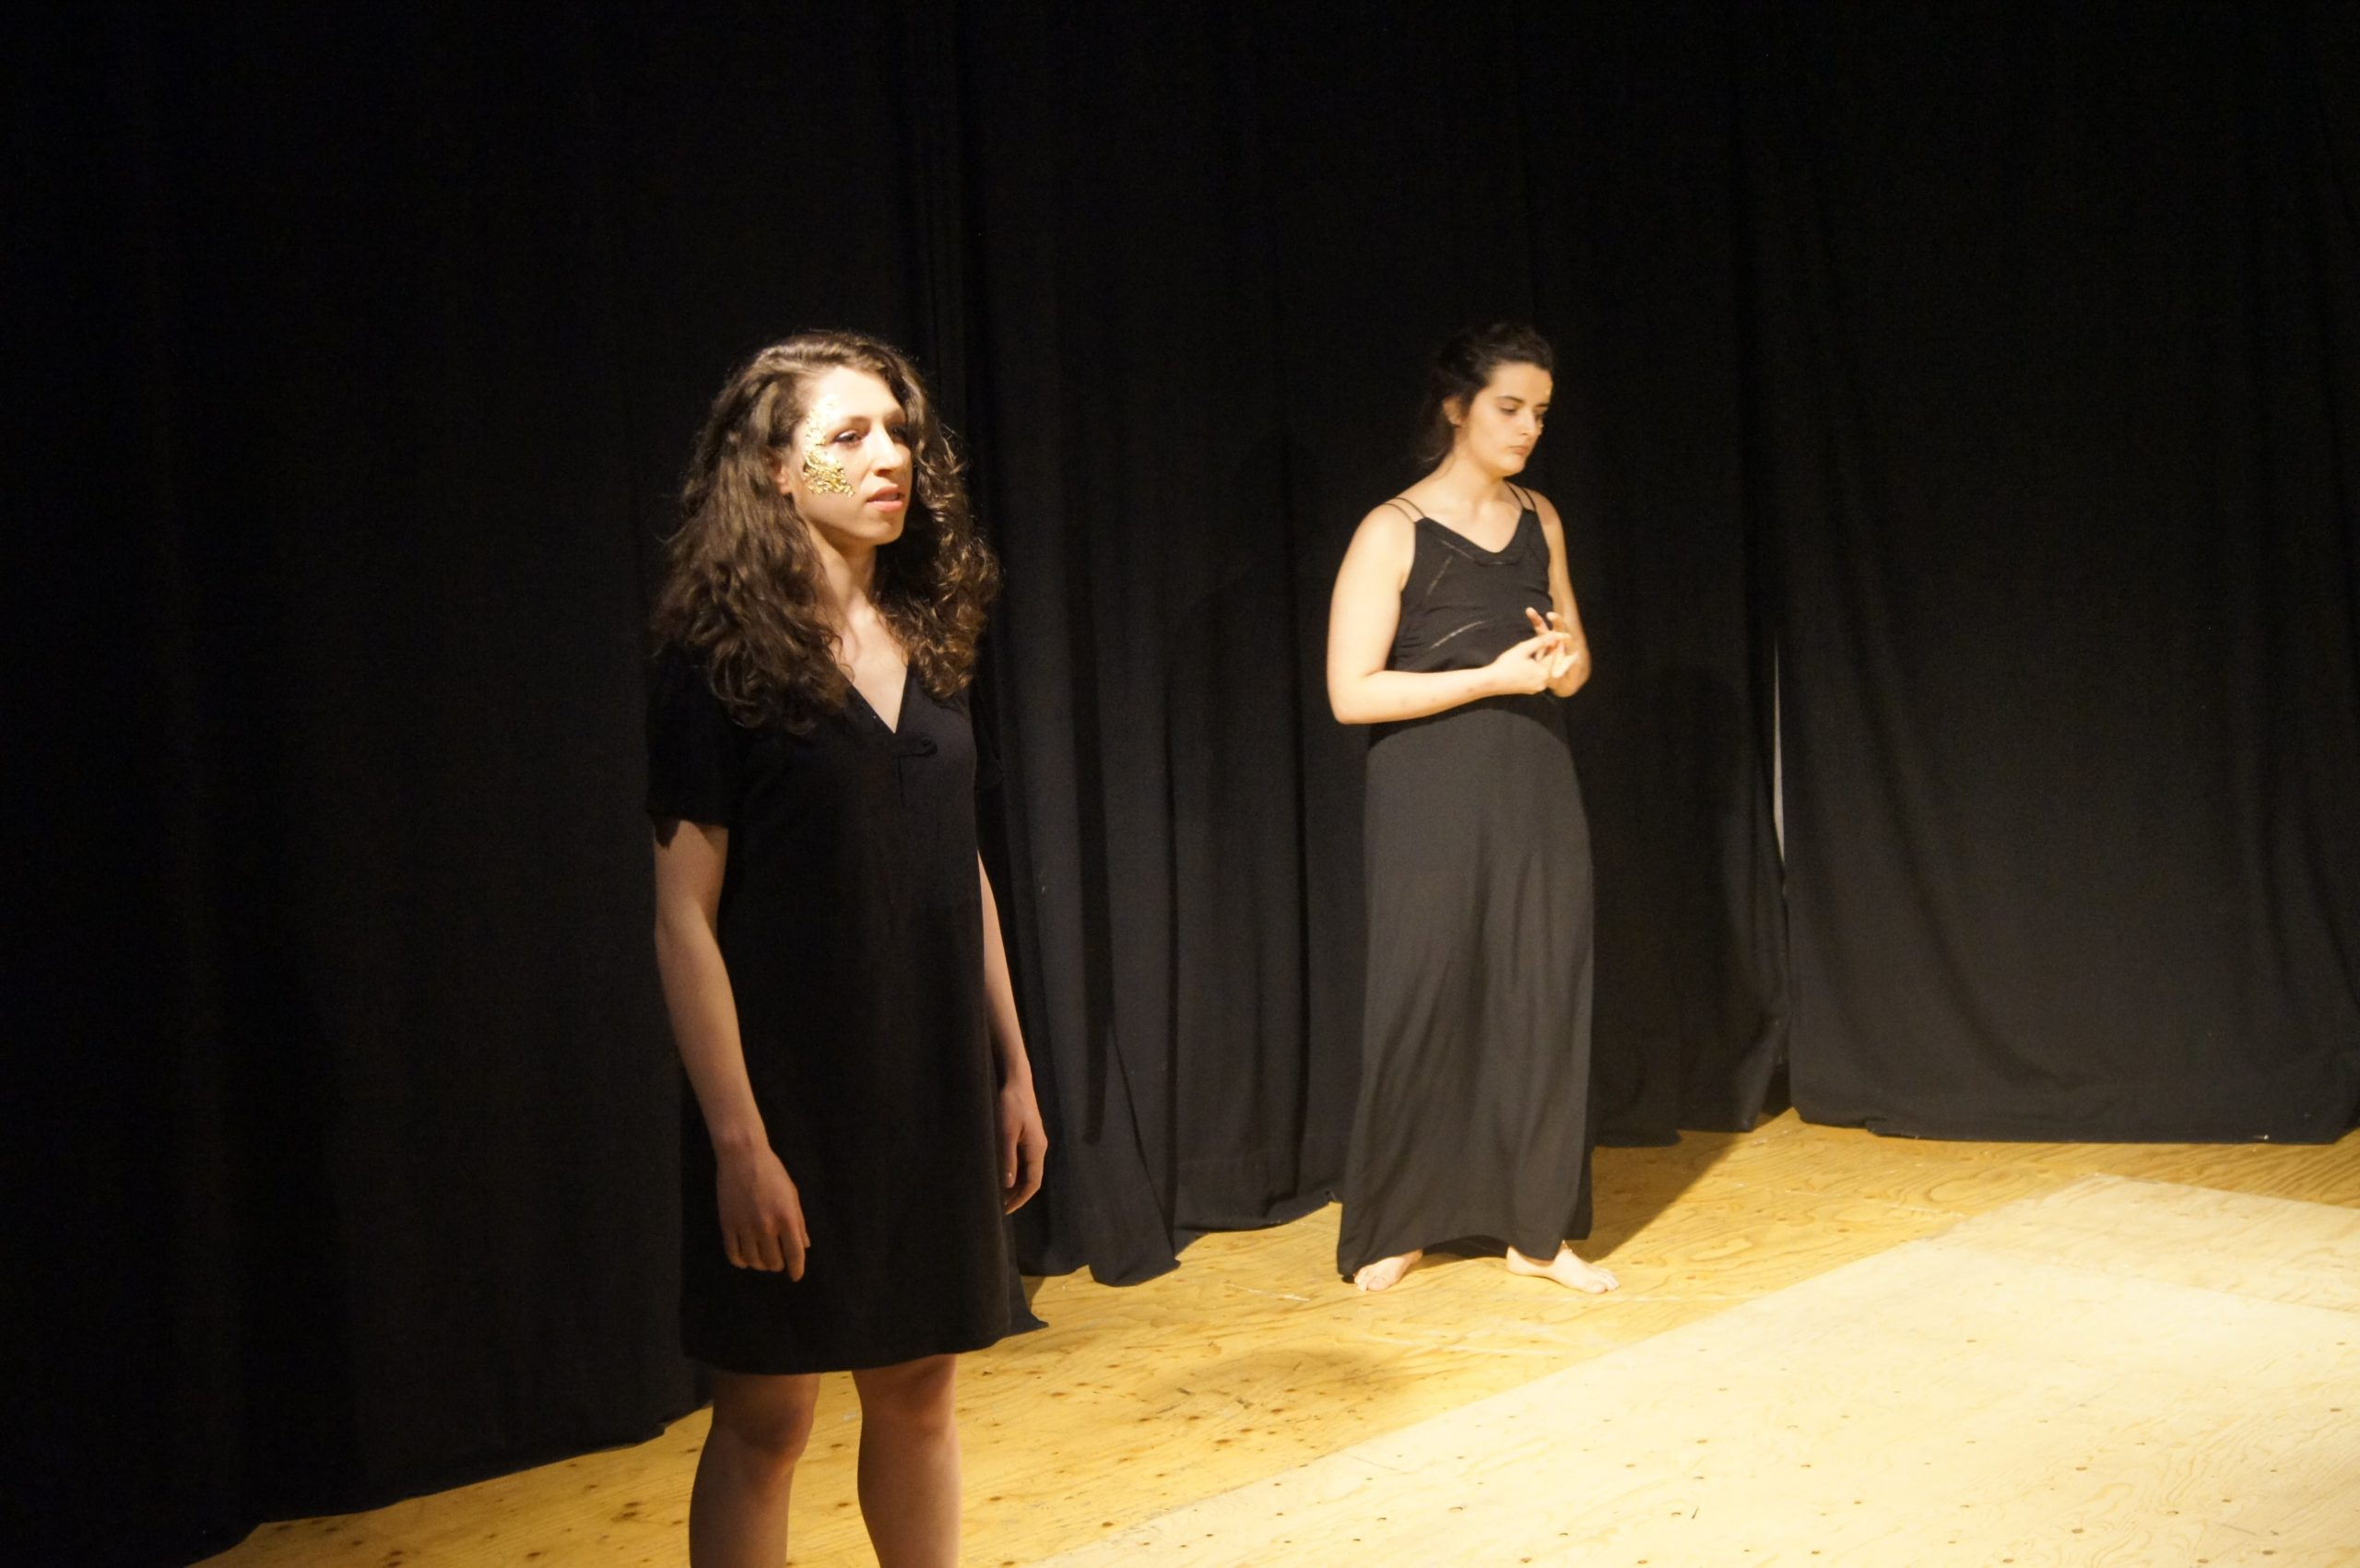 Theatre performance, two women on stage with black dresses. One is reciting, the other one looks sad or concerned